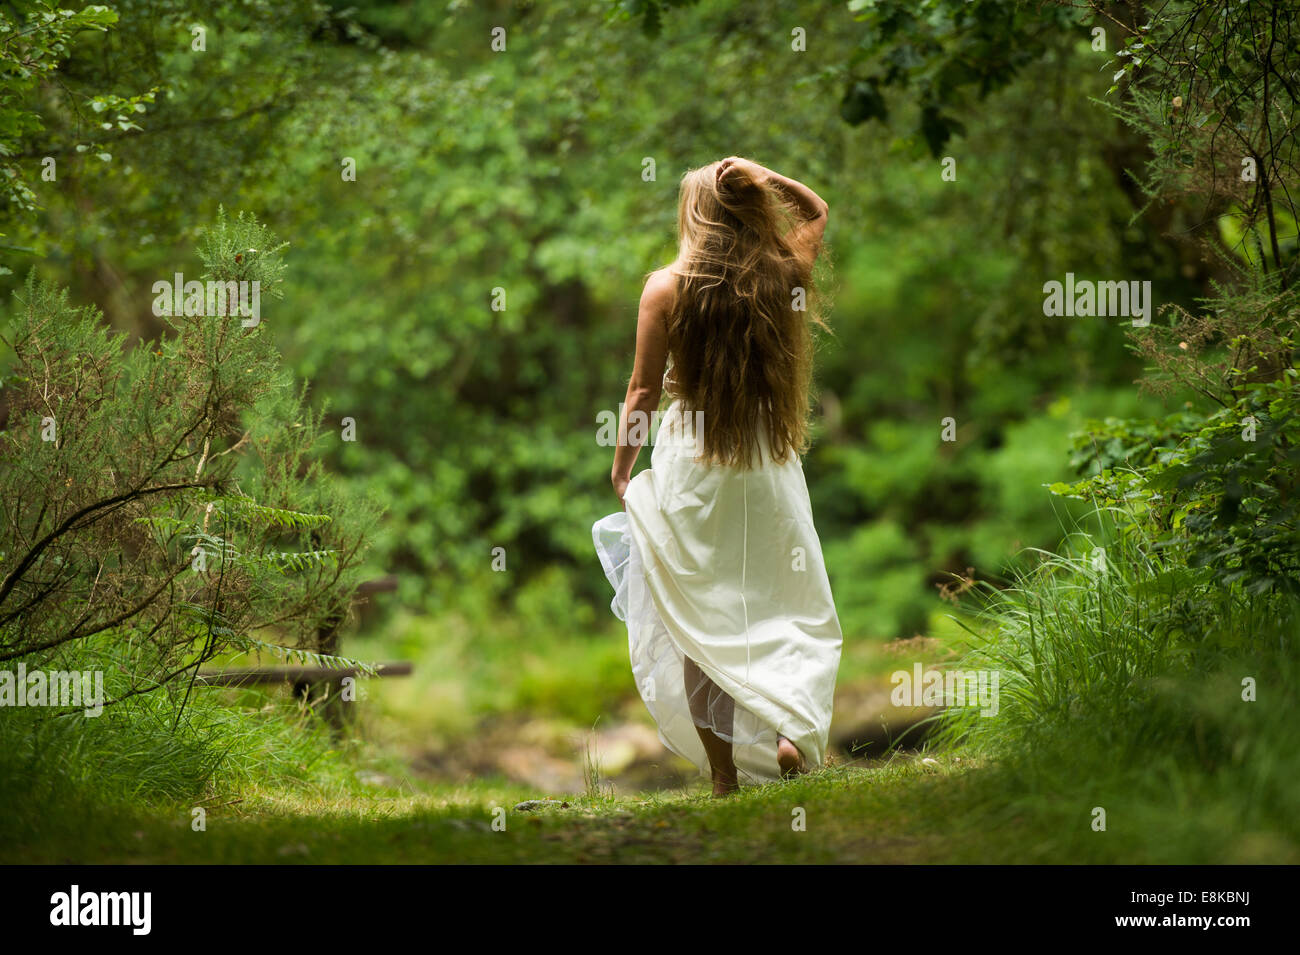 Rear view of a woman 'bride' with long blonde hair looking lost standing on a path in woodland wearing a - Stock Image